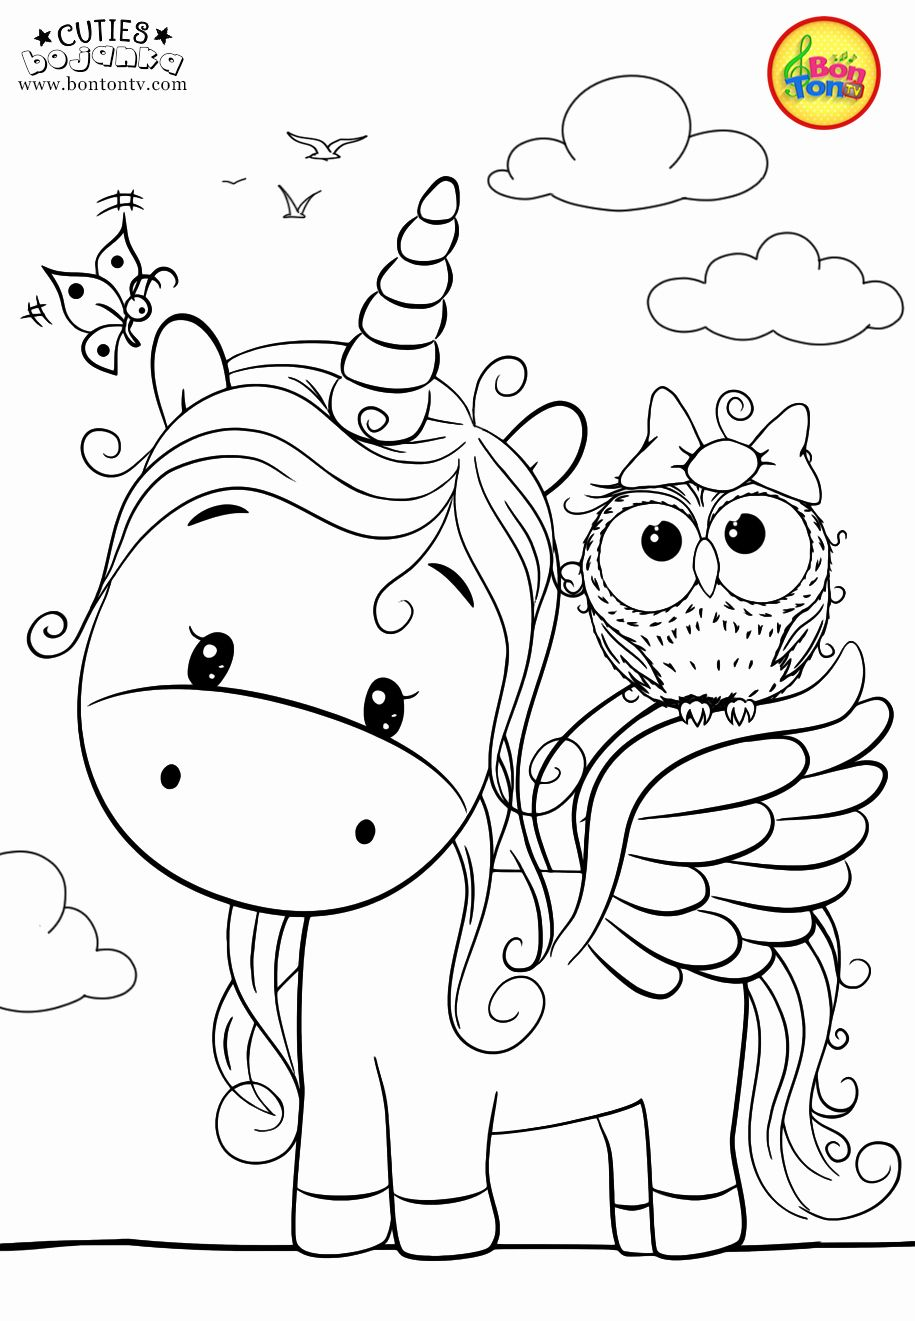 Free Cute Animal Coloring Pages Unique Cuties Coloring Pages For Kids Free Preschool Pr Coloring Pictures For Kids Unicorn Coloring Pages Animal Coloring Books